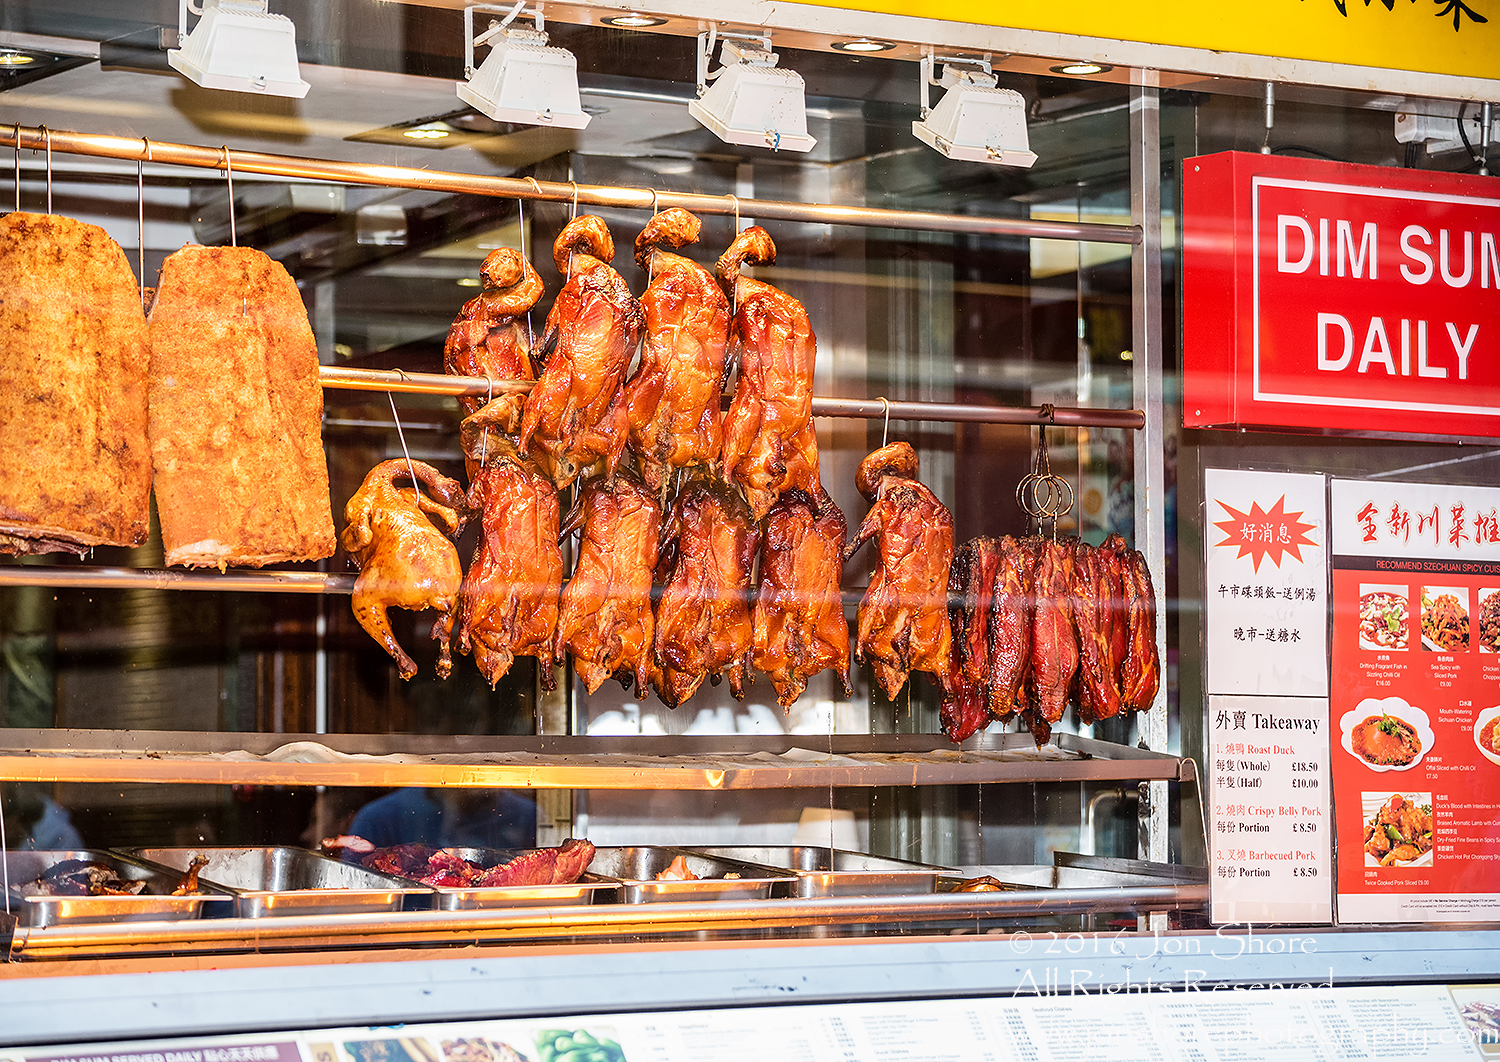 BBQ Duck hanging in the Window - Chinatown, London, UK Tamron 100mm Lens